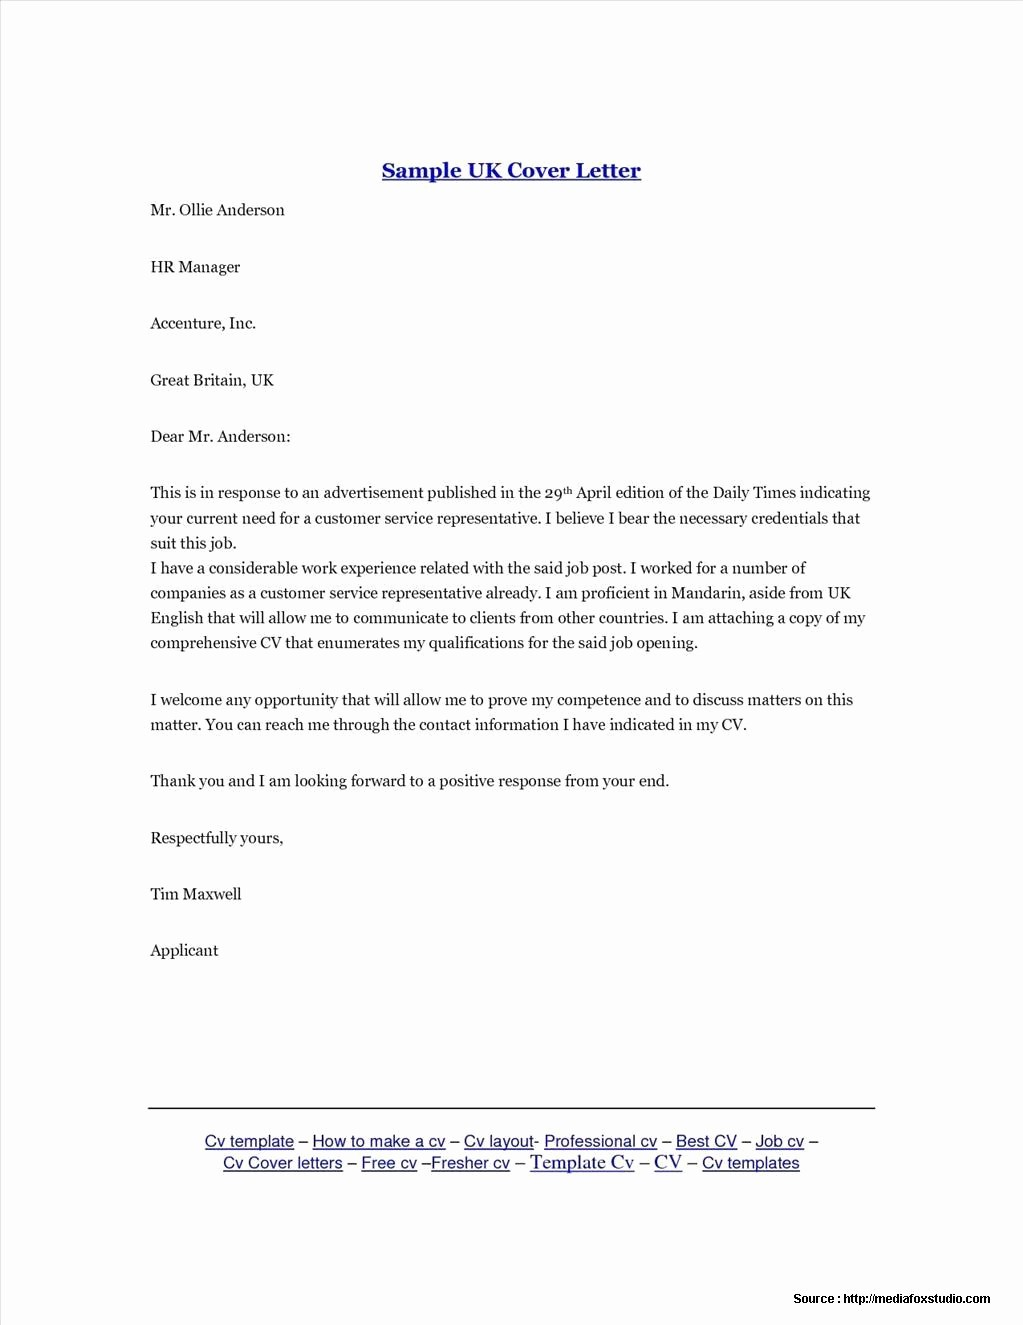 Free Examples Of Cover Letter Unique Cover Letter Templates Free Uk Cover Letter Resume